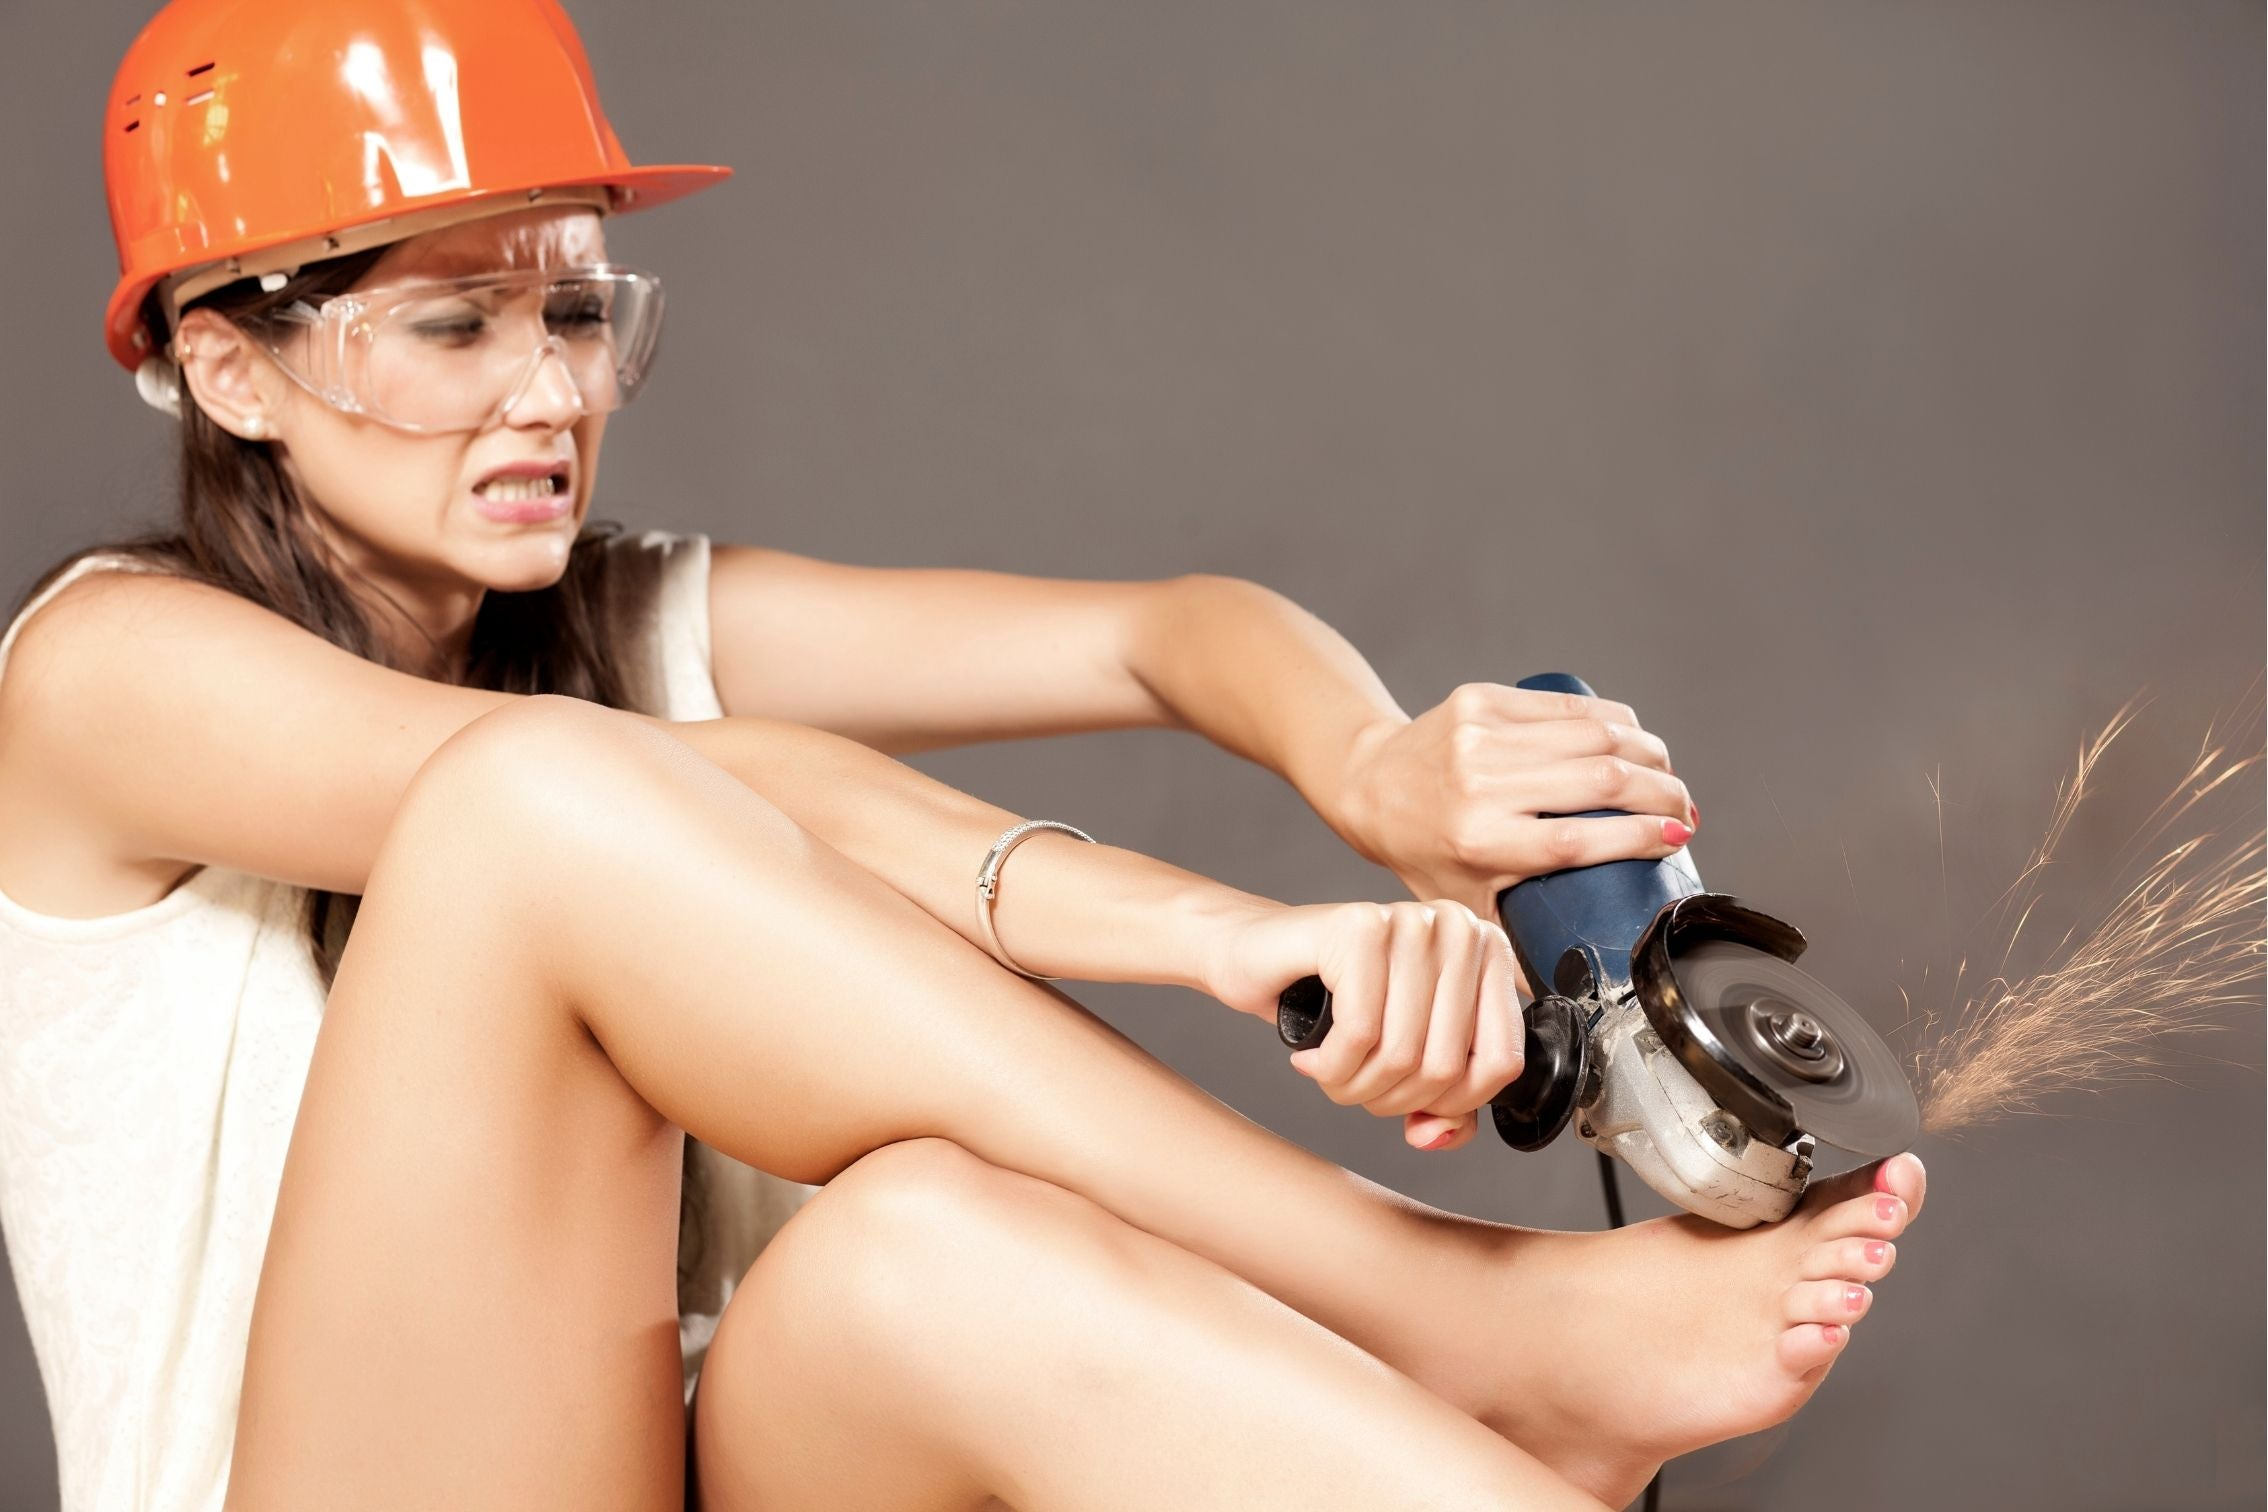 jokey image of a woman with disc grinder trying to trim her toenails